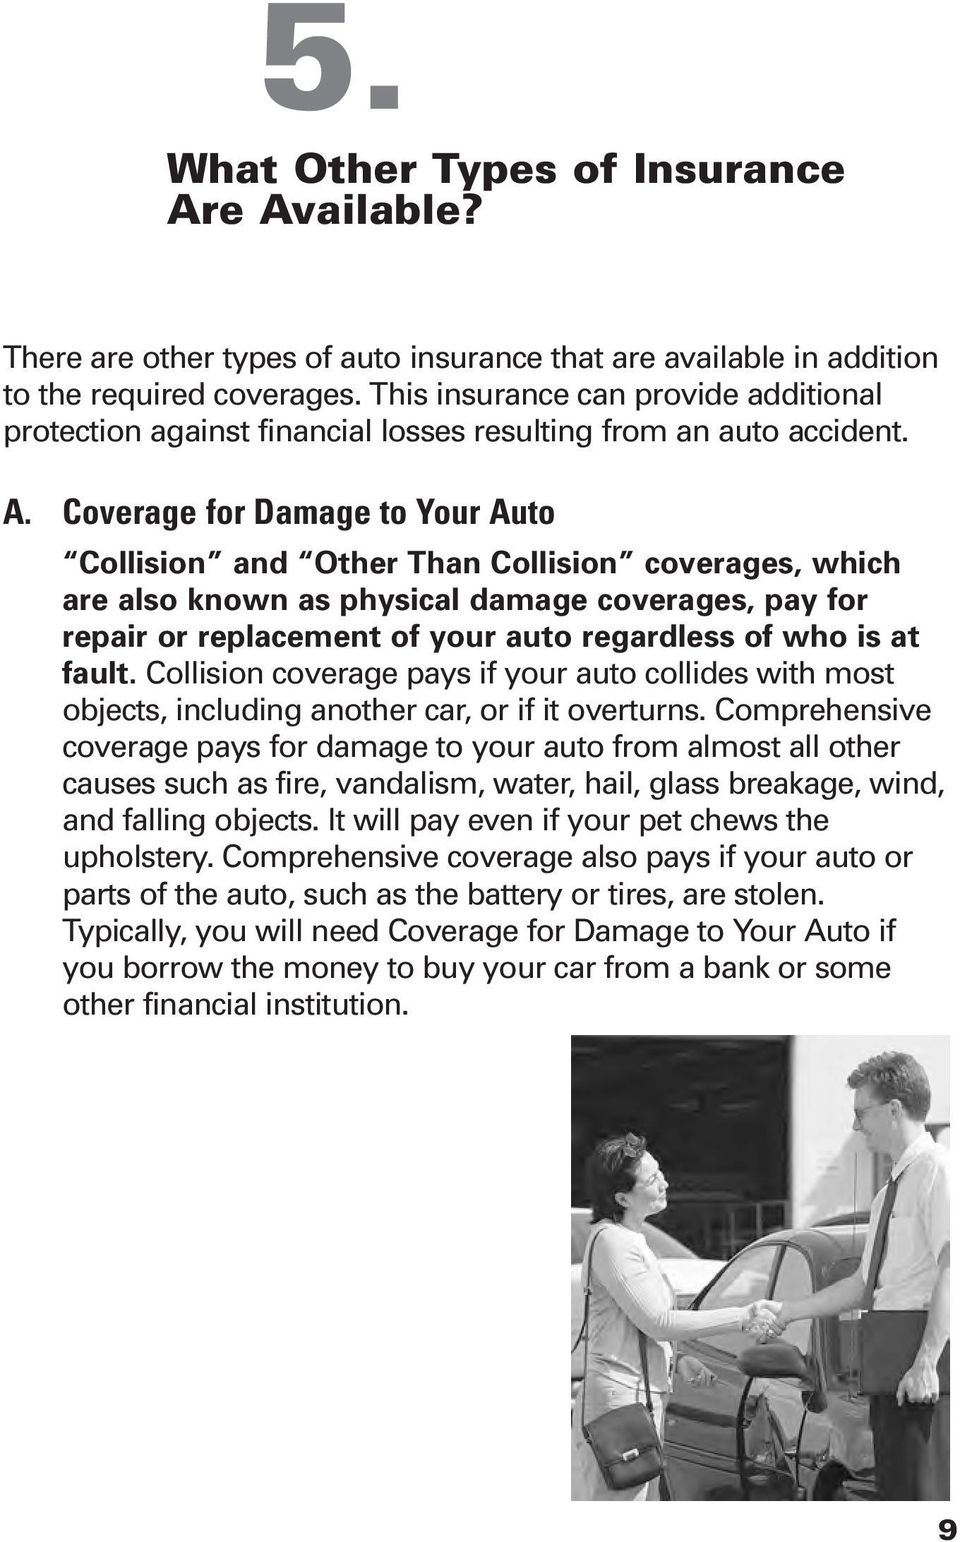 Coverage for Damage to Your Auto Collision and Other Than Collision coverages, which are also known as physical damage coverages, pay for repair or replacement of your auto regardless of who is at